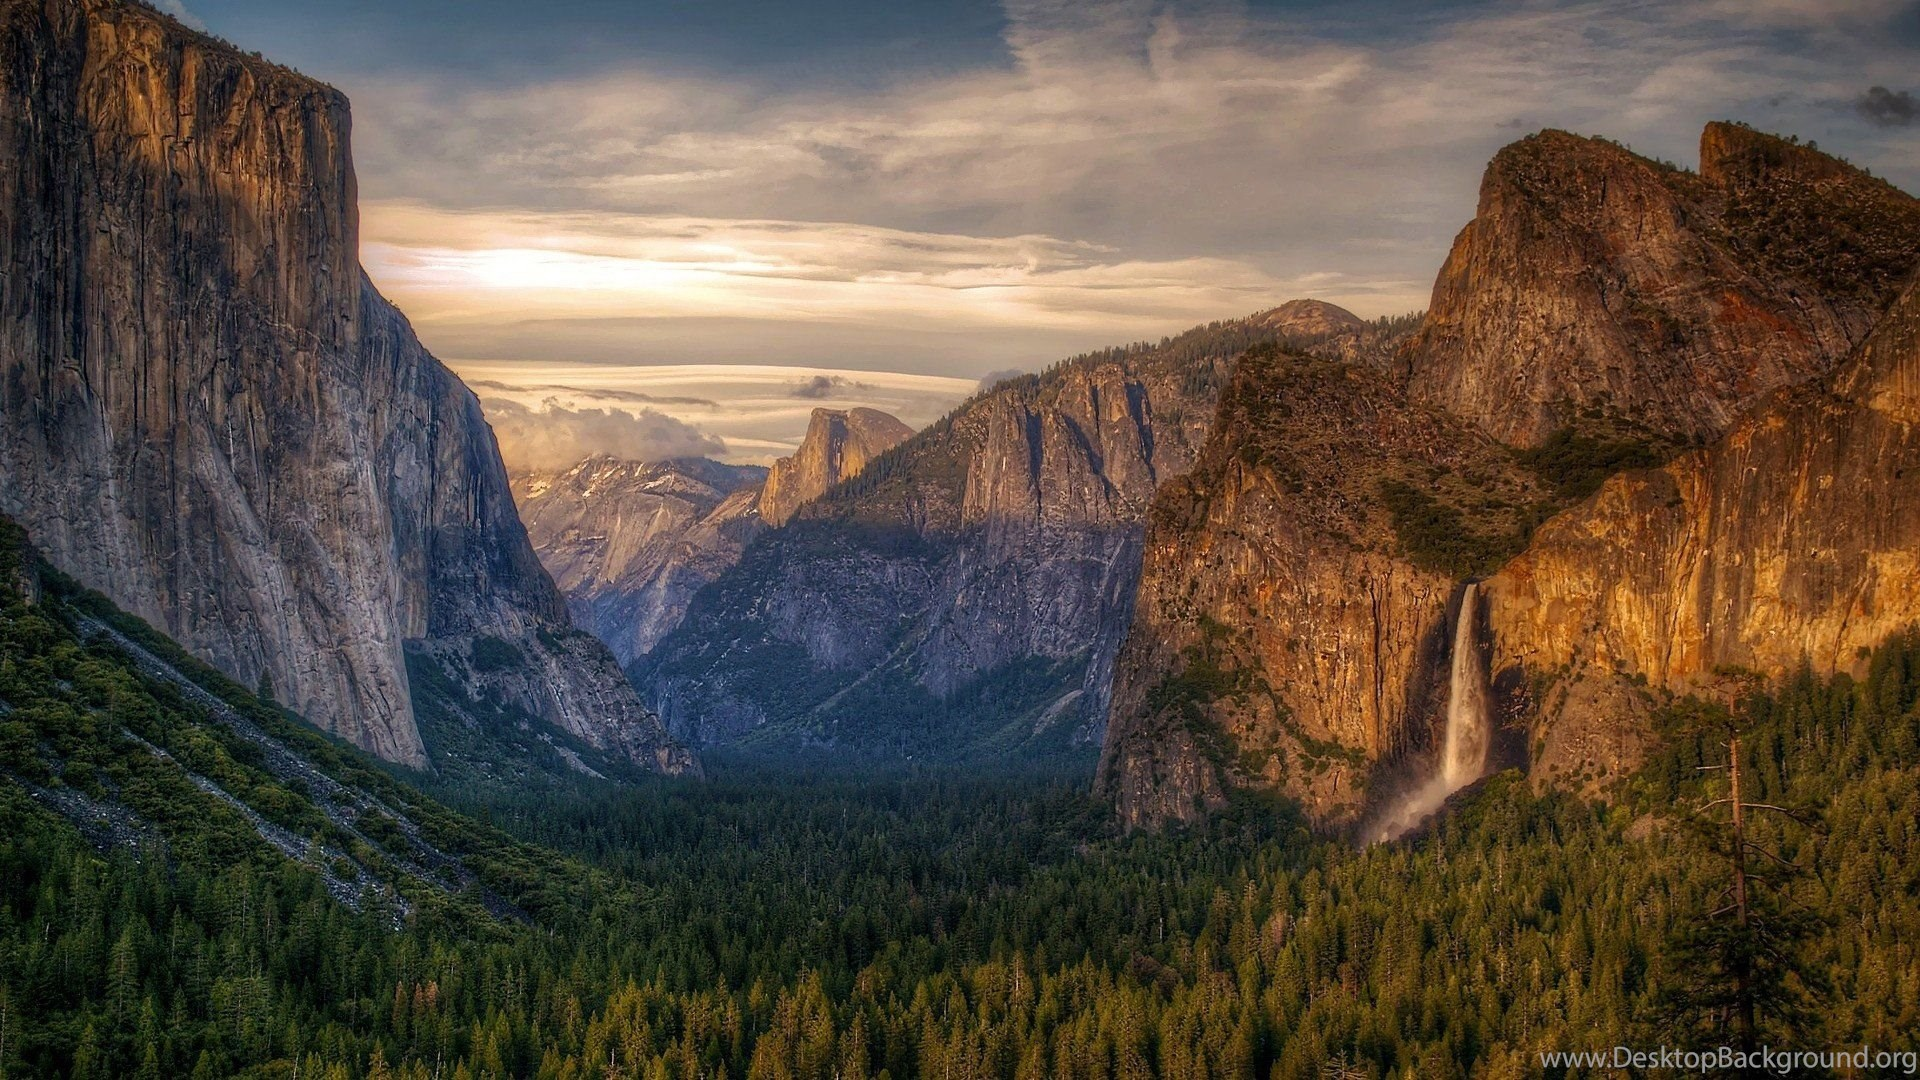 Yosemite national park hd wallpapers - Yosemite national park hd wallpaper ...